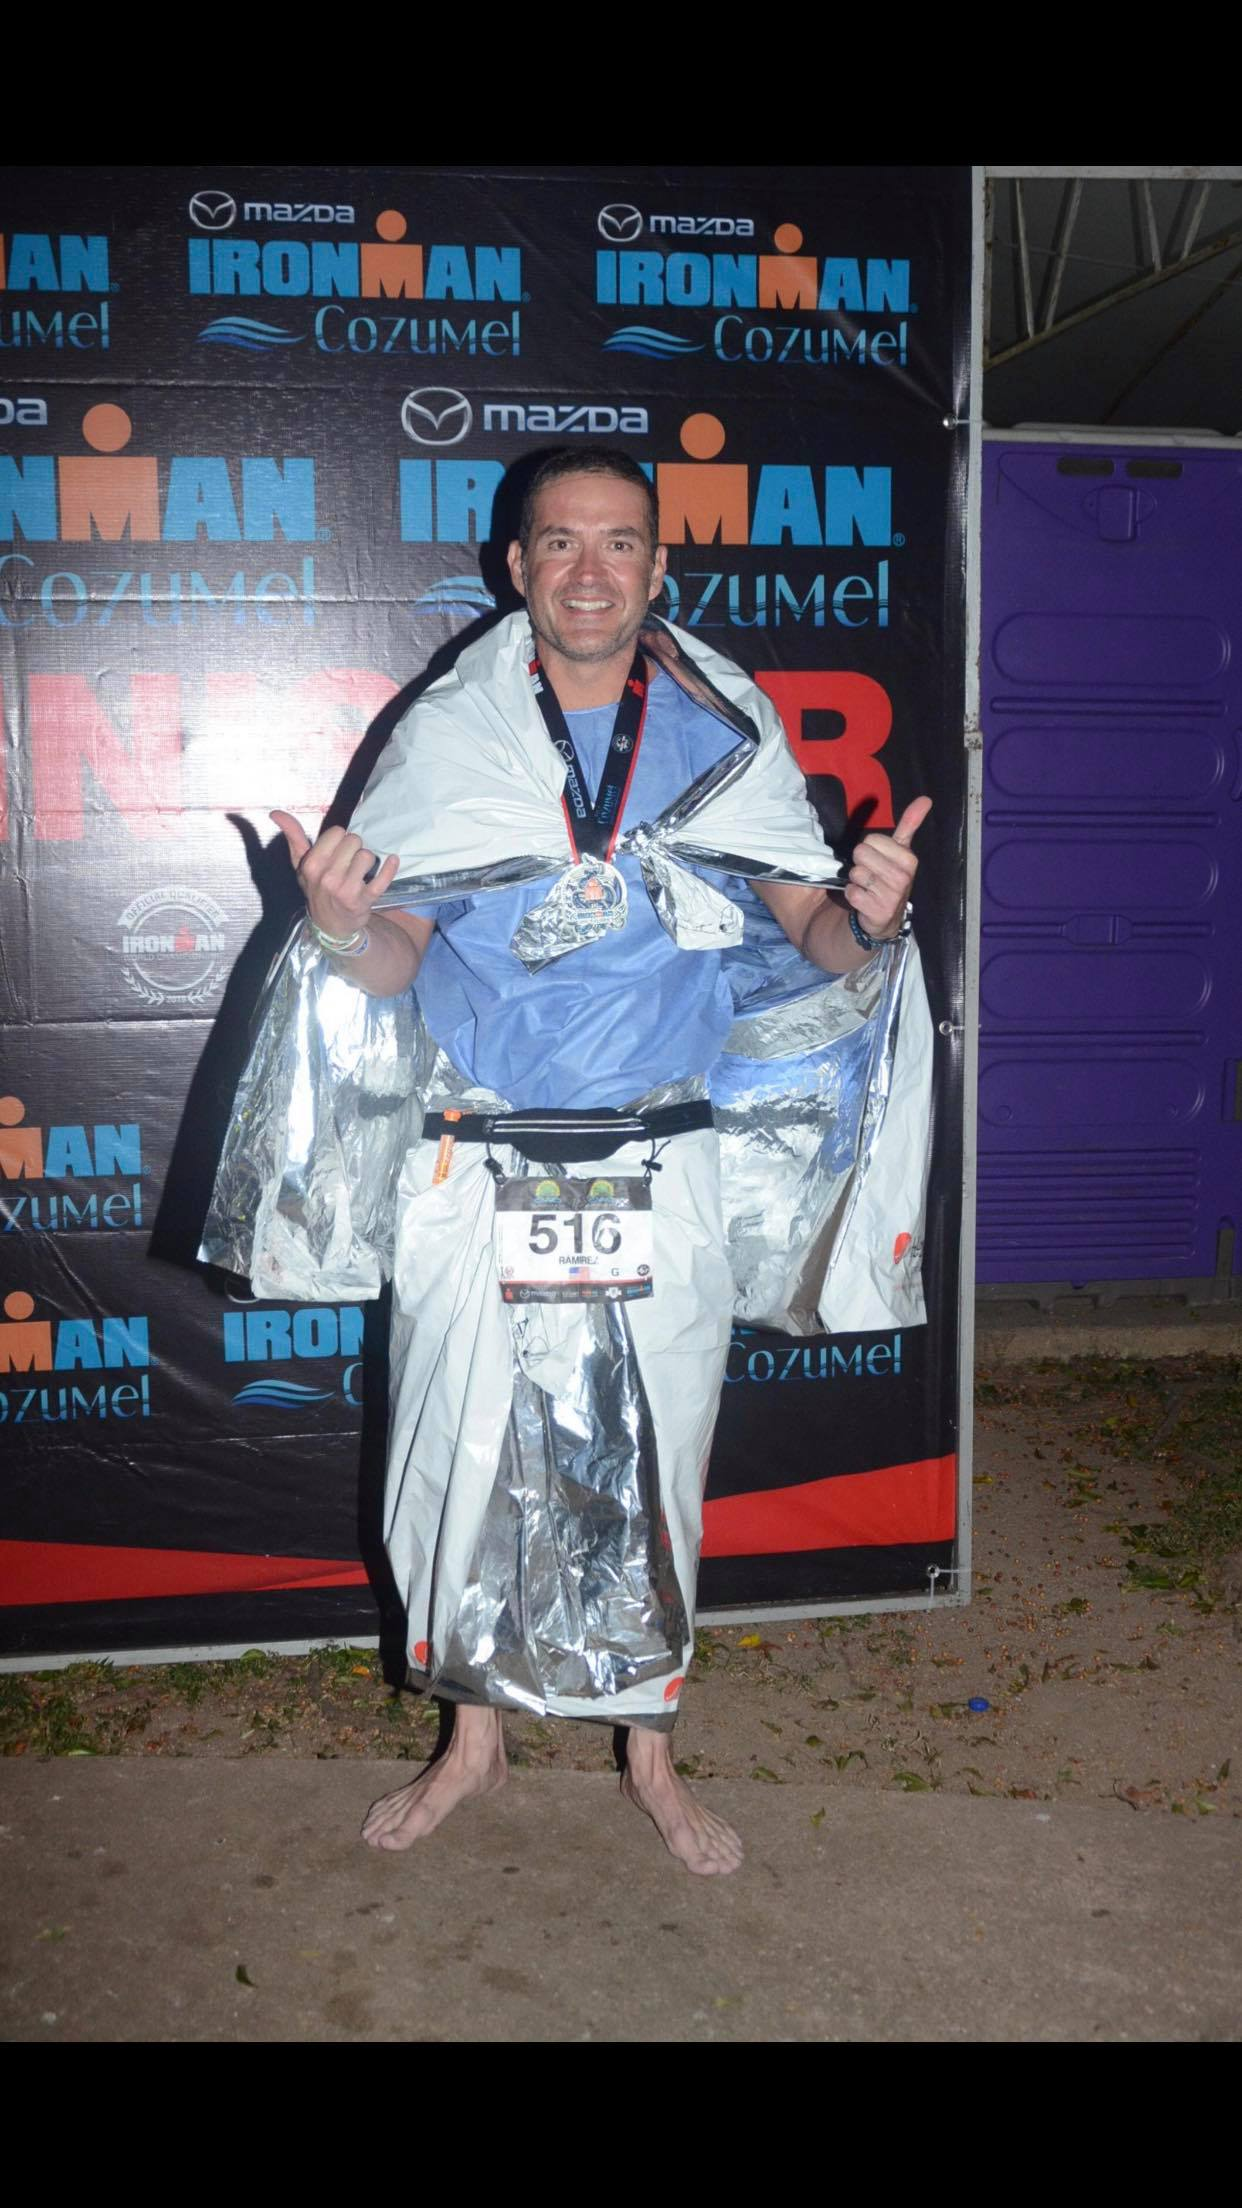 Coach_Terry_Wilson_Pursuit_of_The_Perfect_Race_IRONMAN_Finish_1.jpg